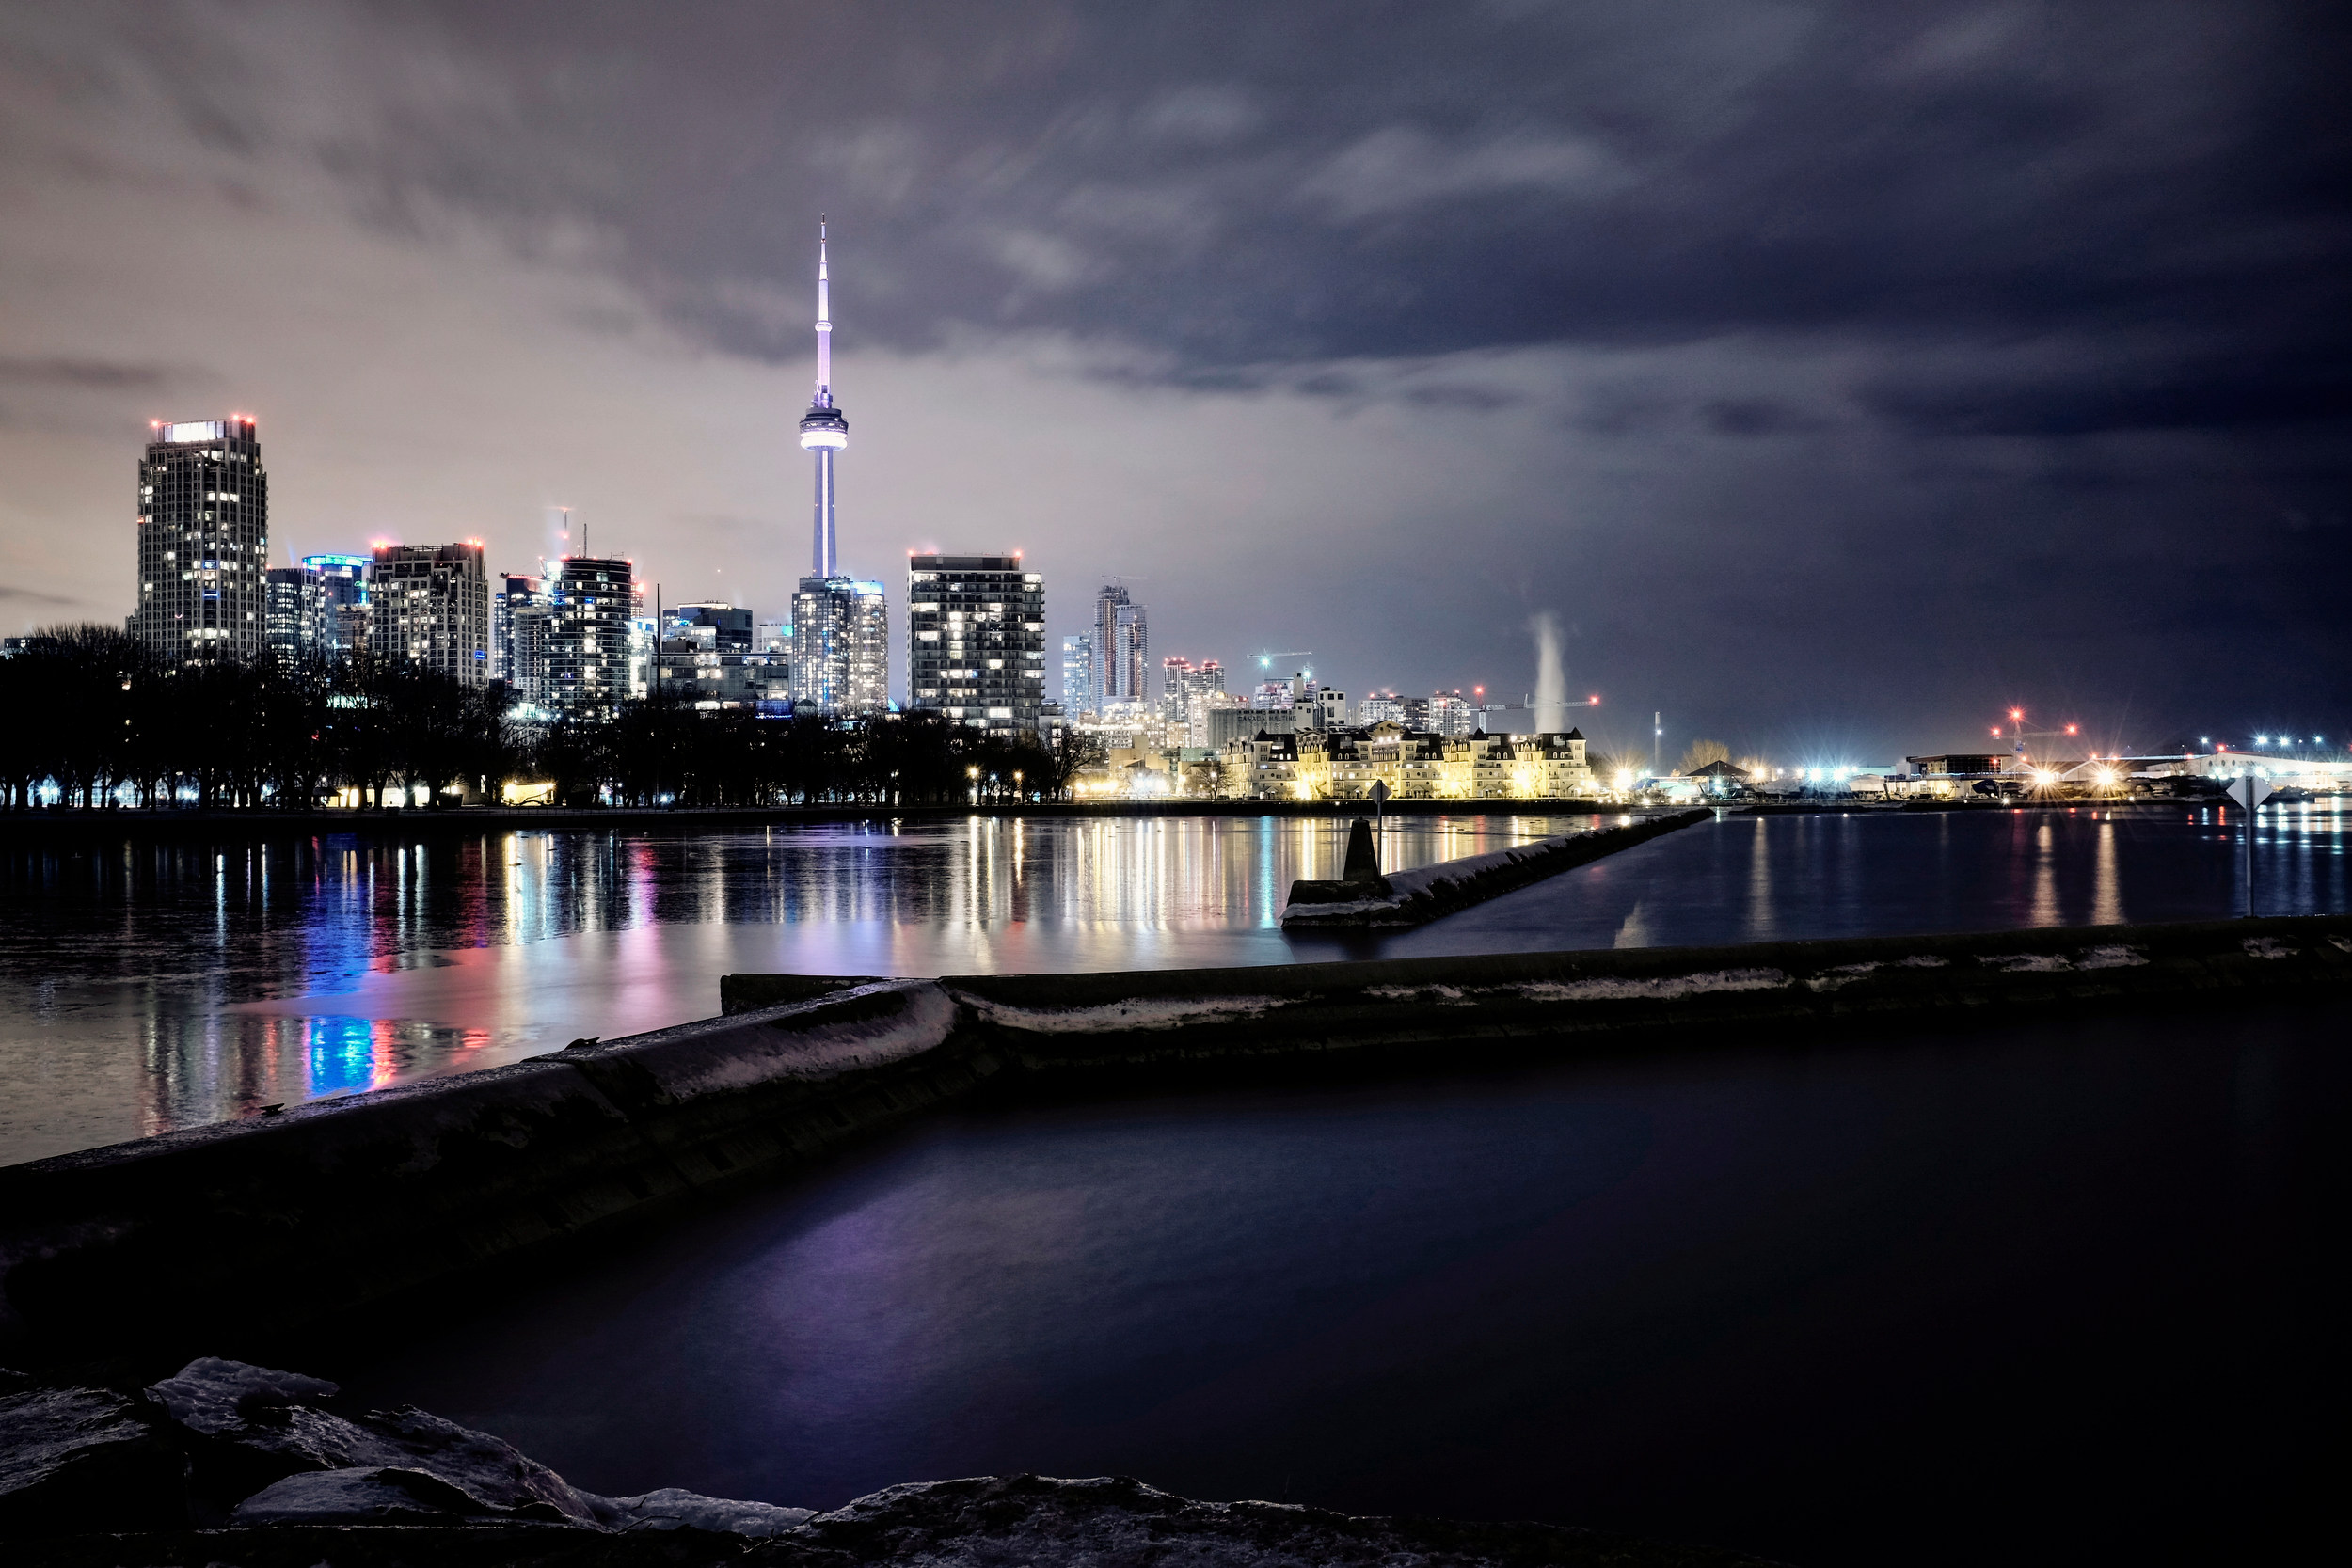 TORONTO NIGHTSCAPE © TODD SPOTH